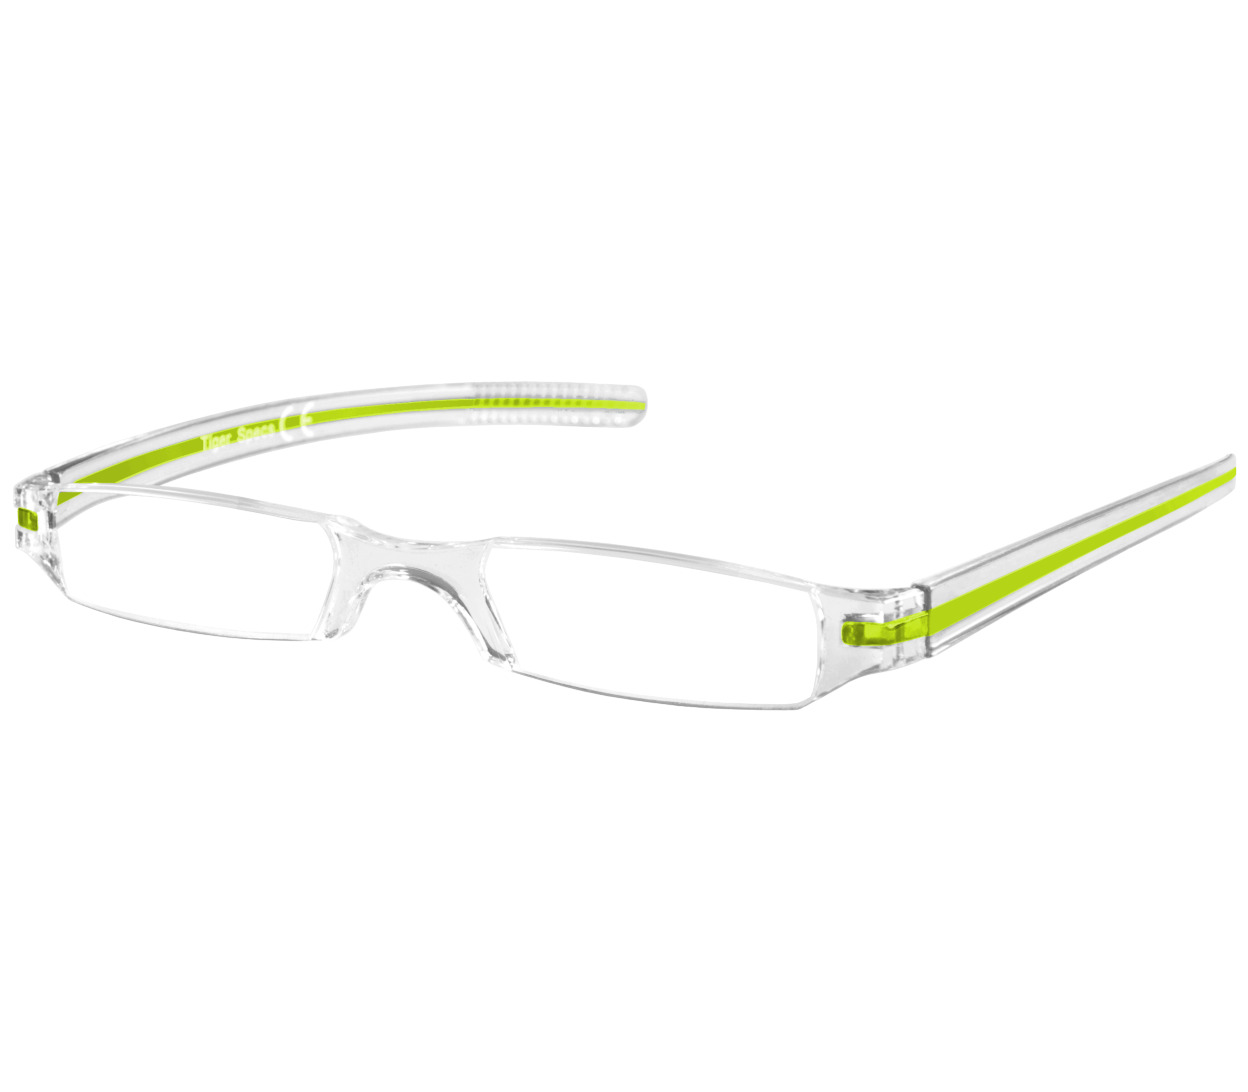 Main Image (Angle) - Soda (Green) Tube Reading Glasses